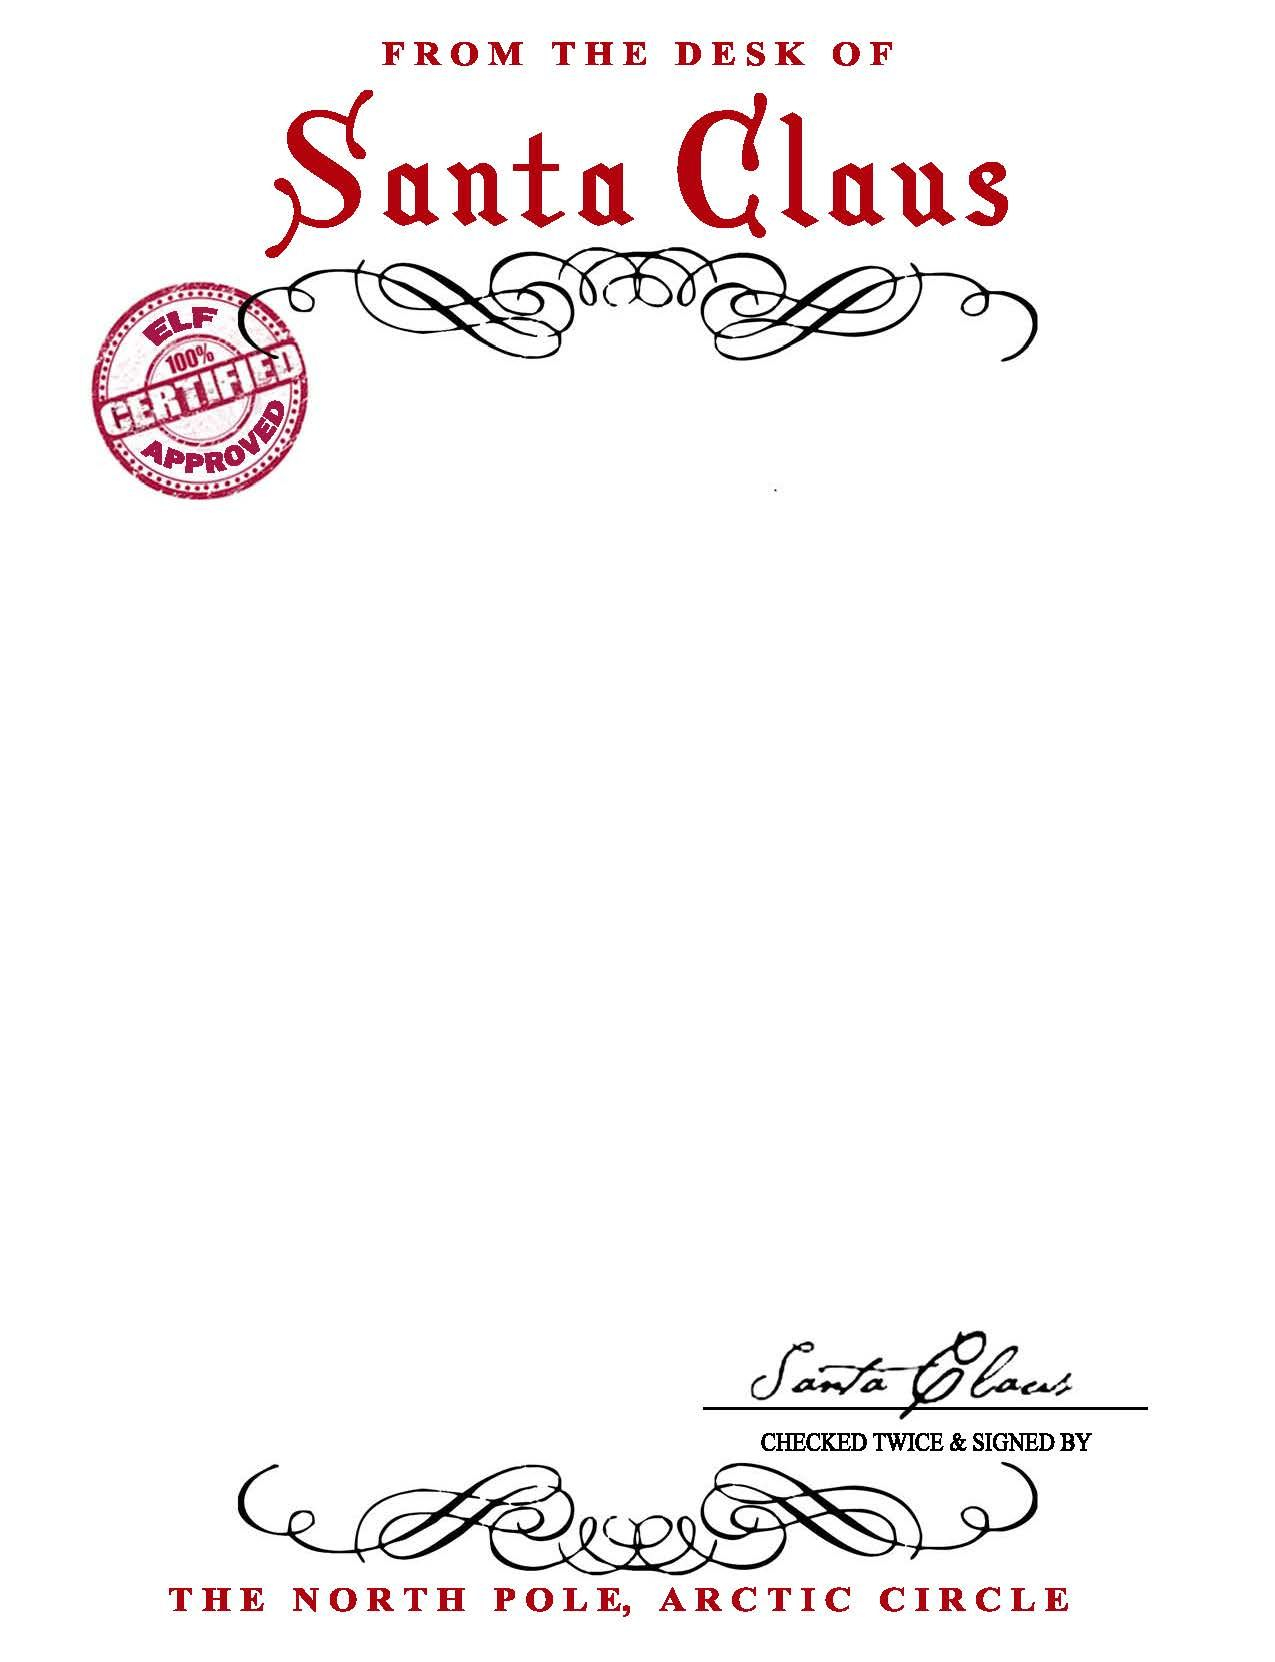 Santa Reply Letter Template - Santa Claus Letterhead Will Bring Lots Of Joy to Children